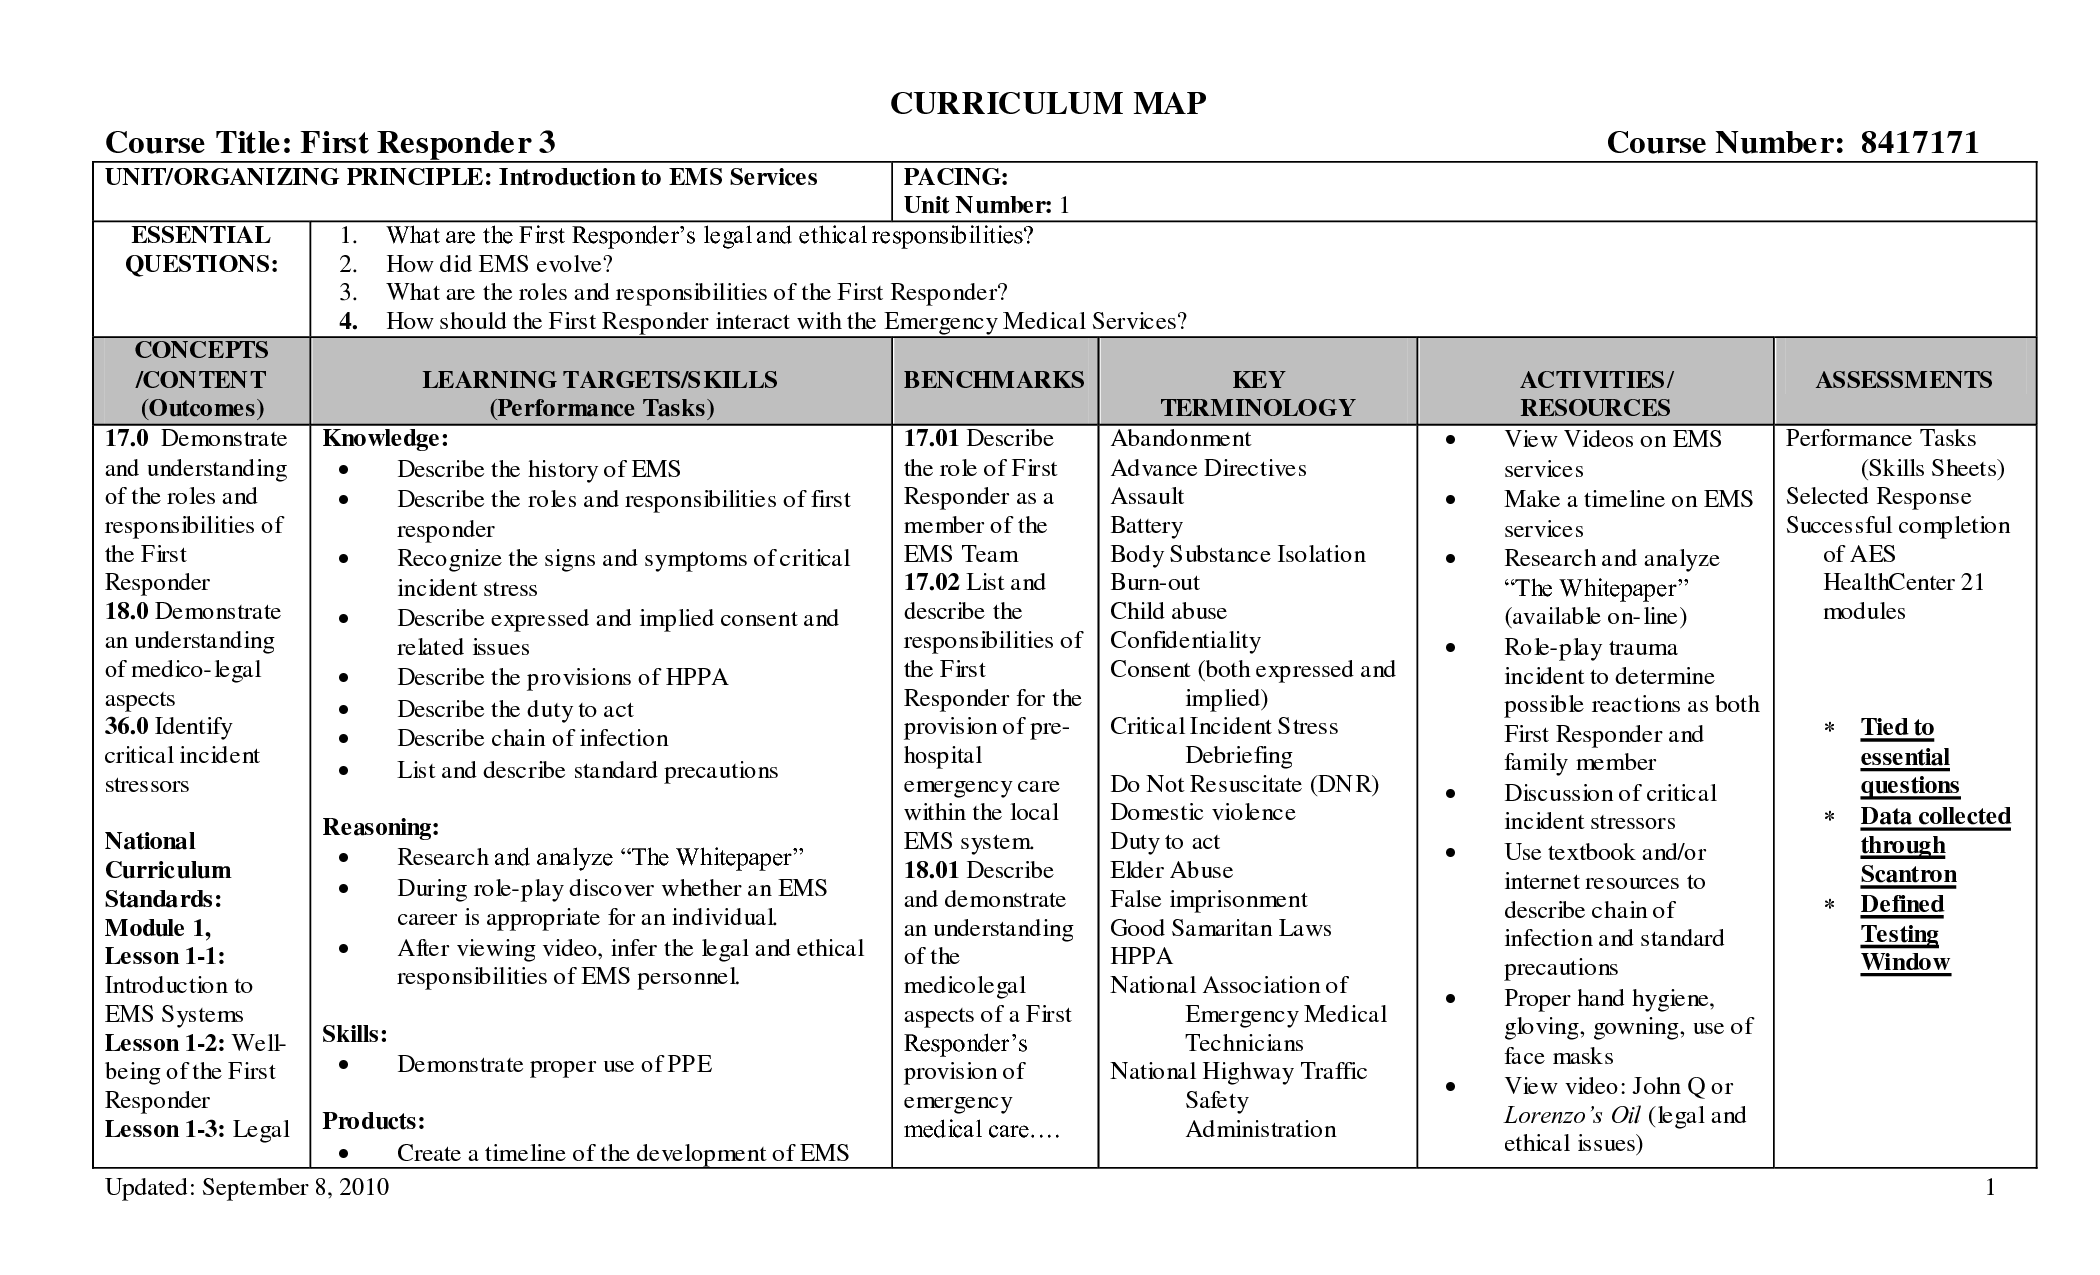 Curriculum mapping template images sok71b3m teaching resources curriculum mapping template images sok71b3m maxwellsz